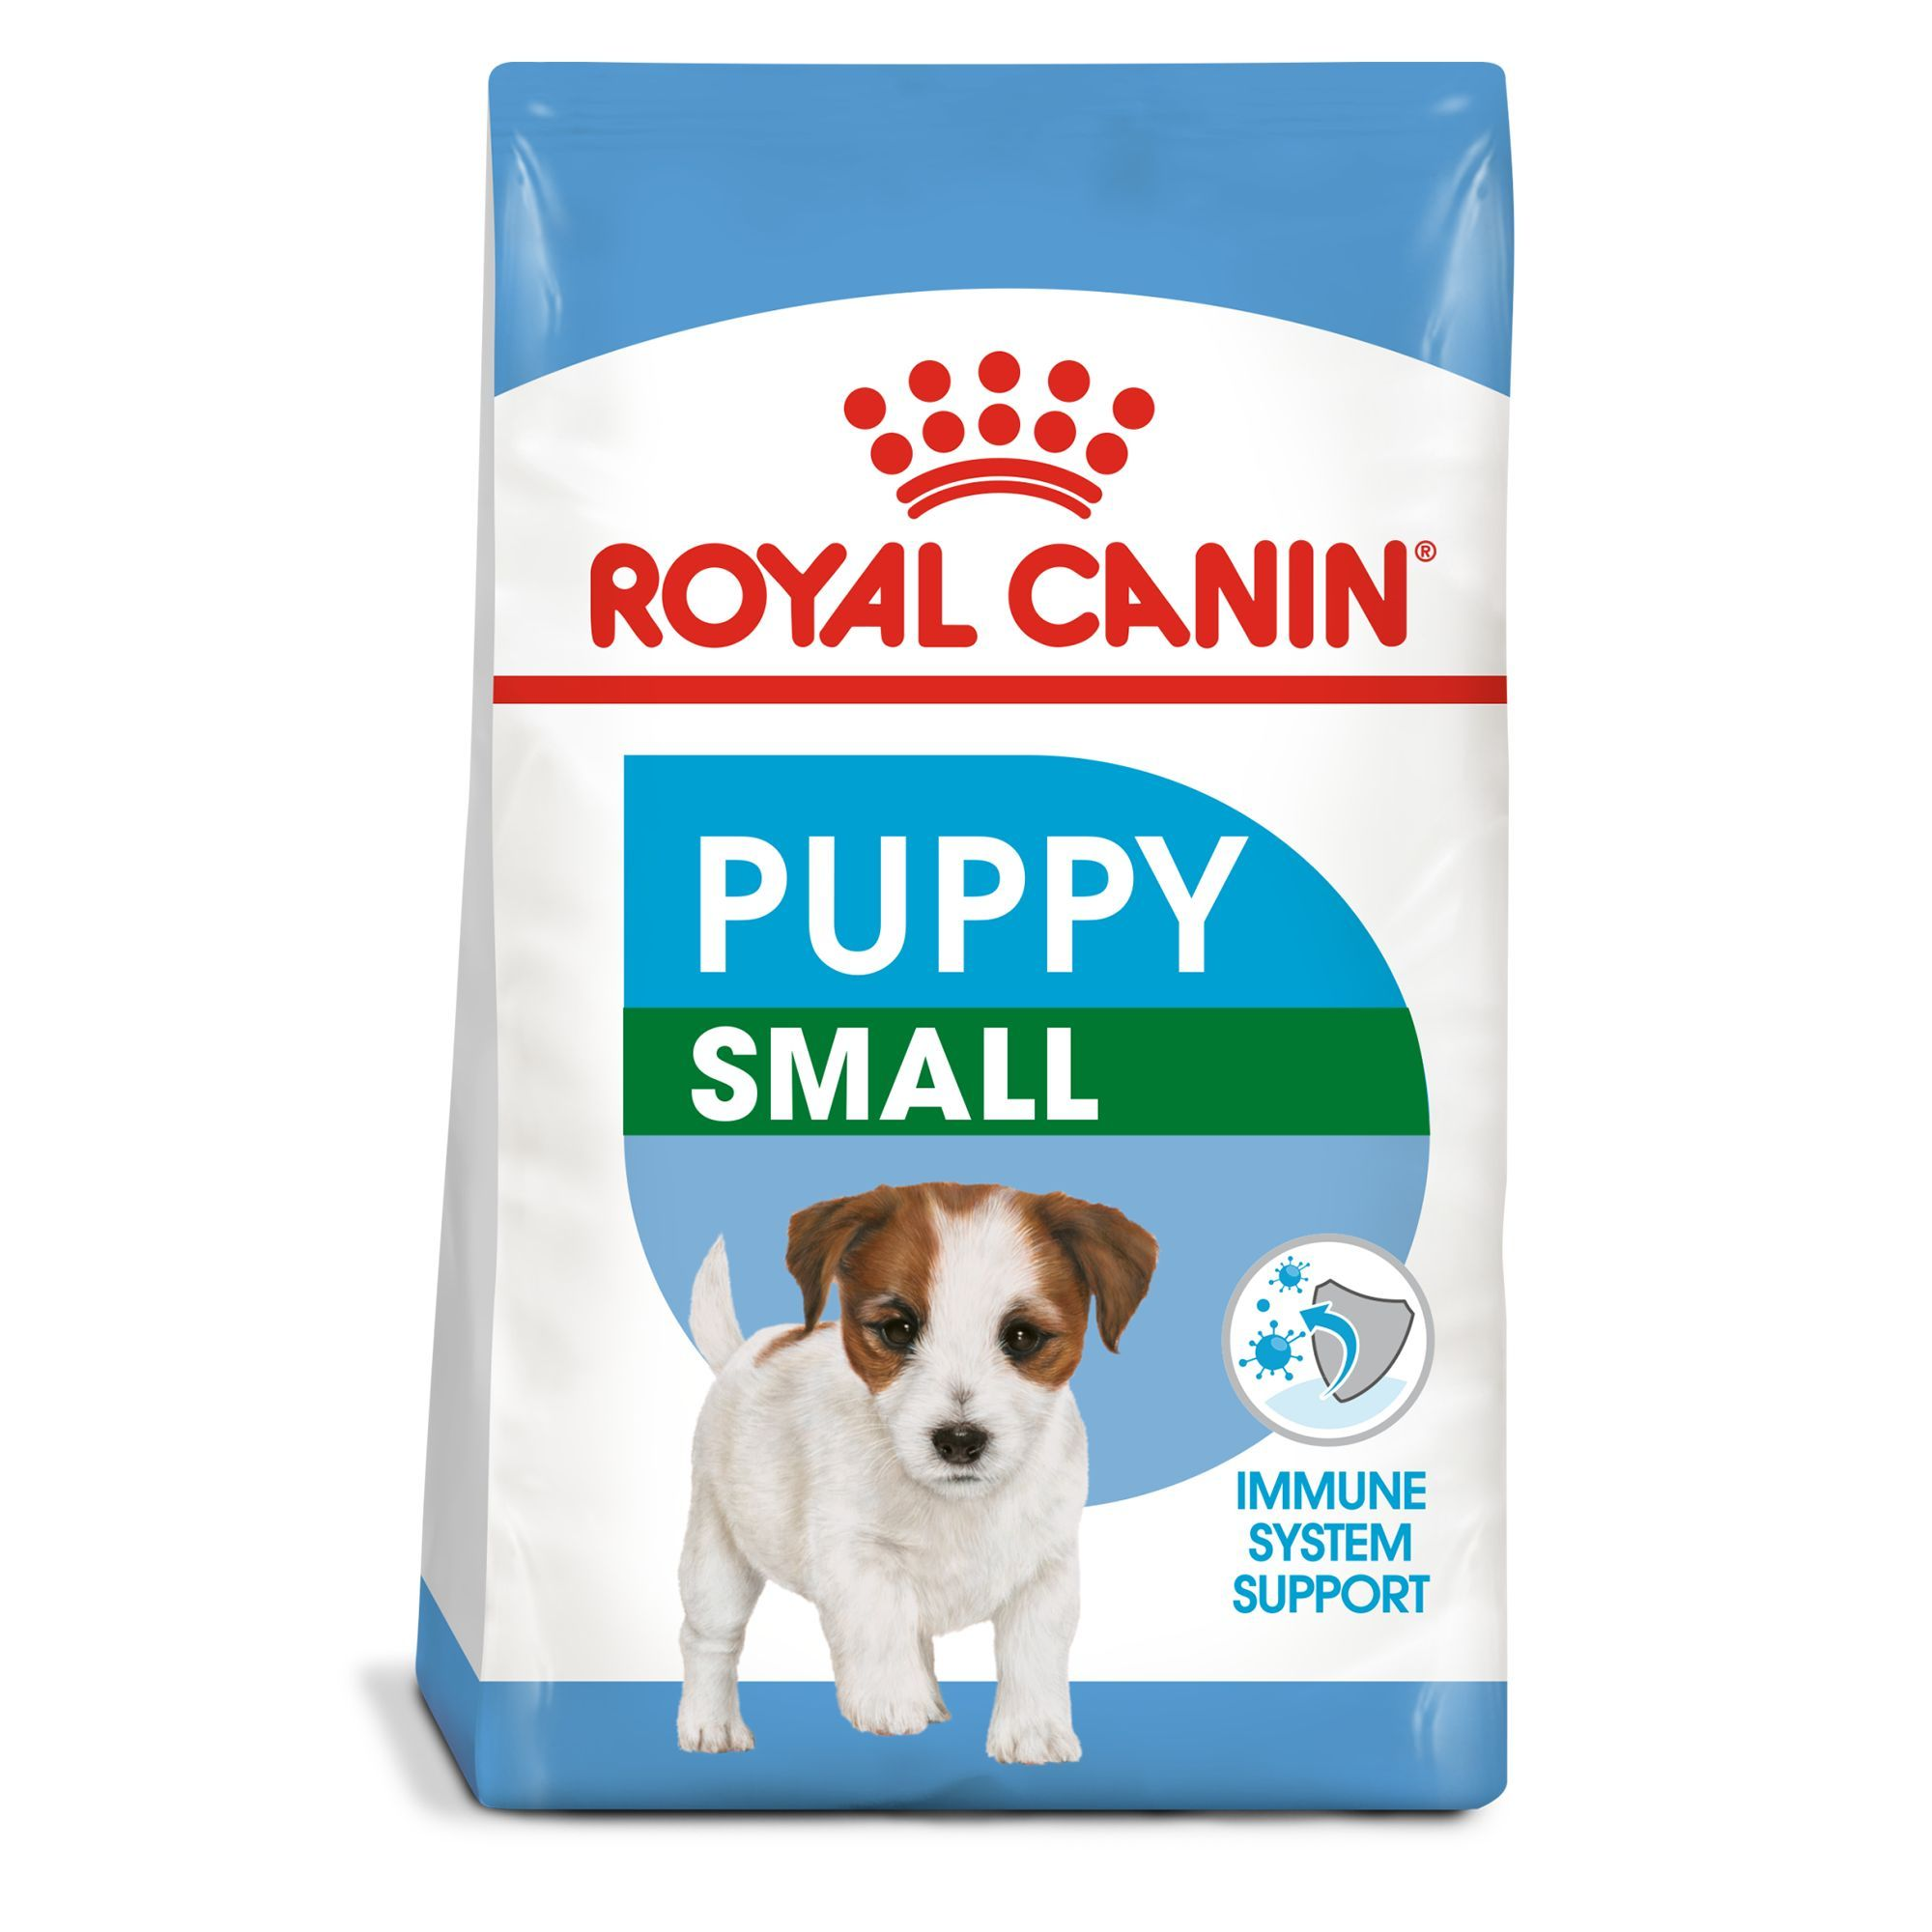 Royal Canin Size Health Nutrition Mini Puppy Food Size 2 5 Lb